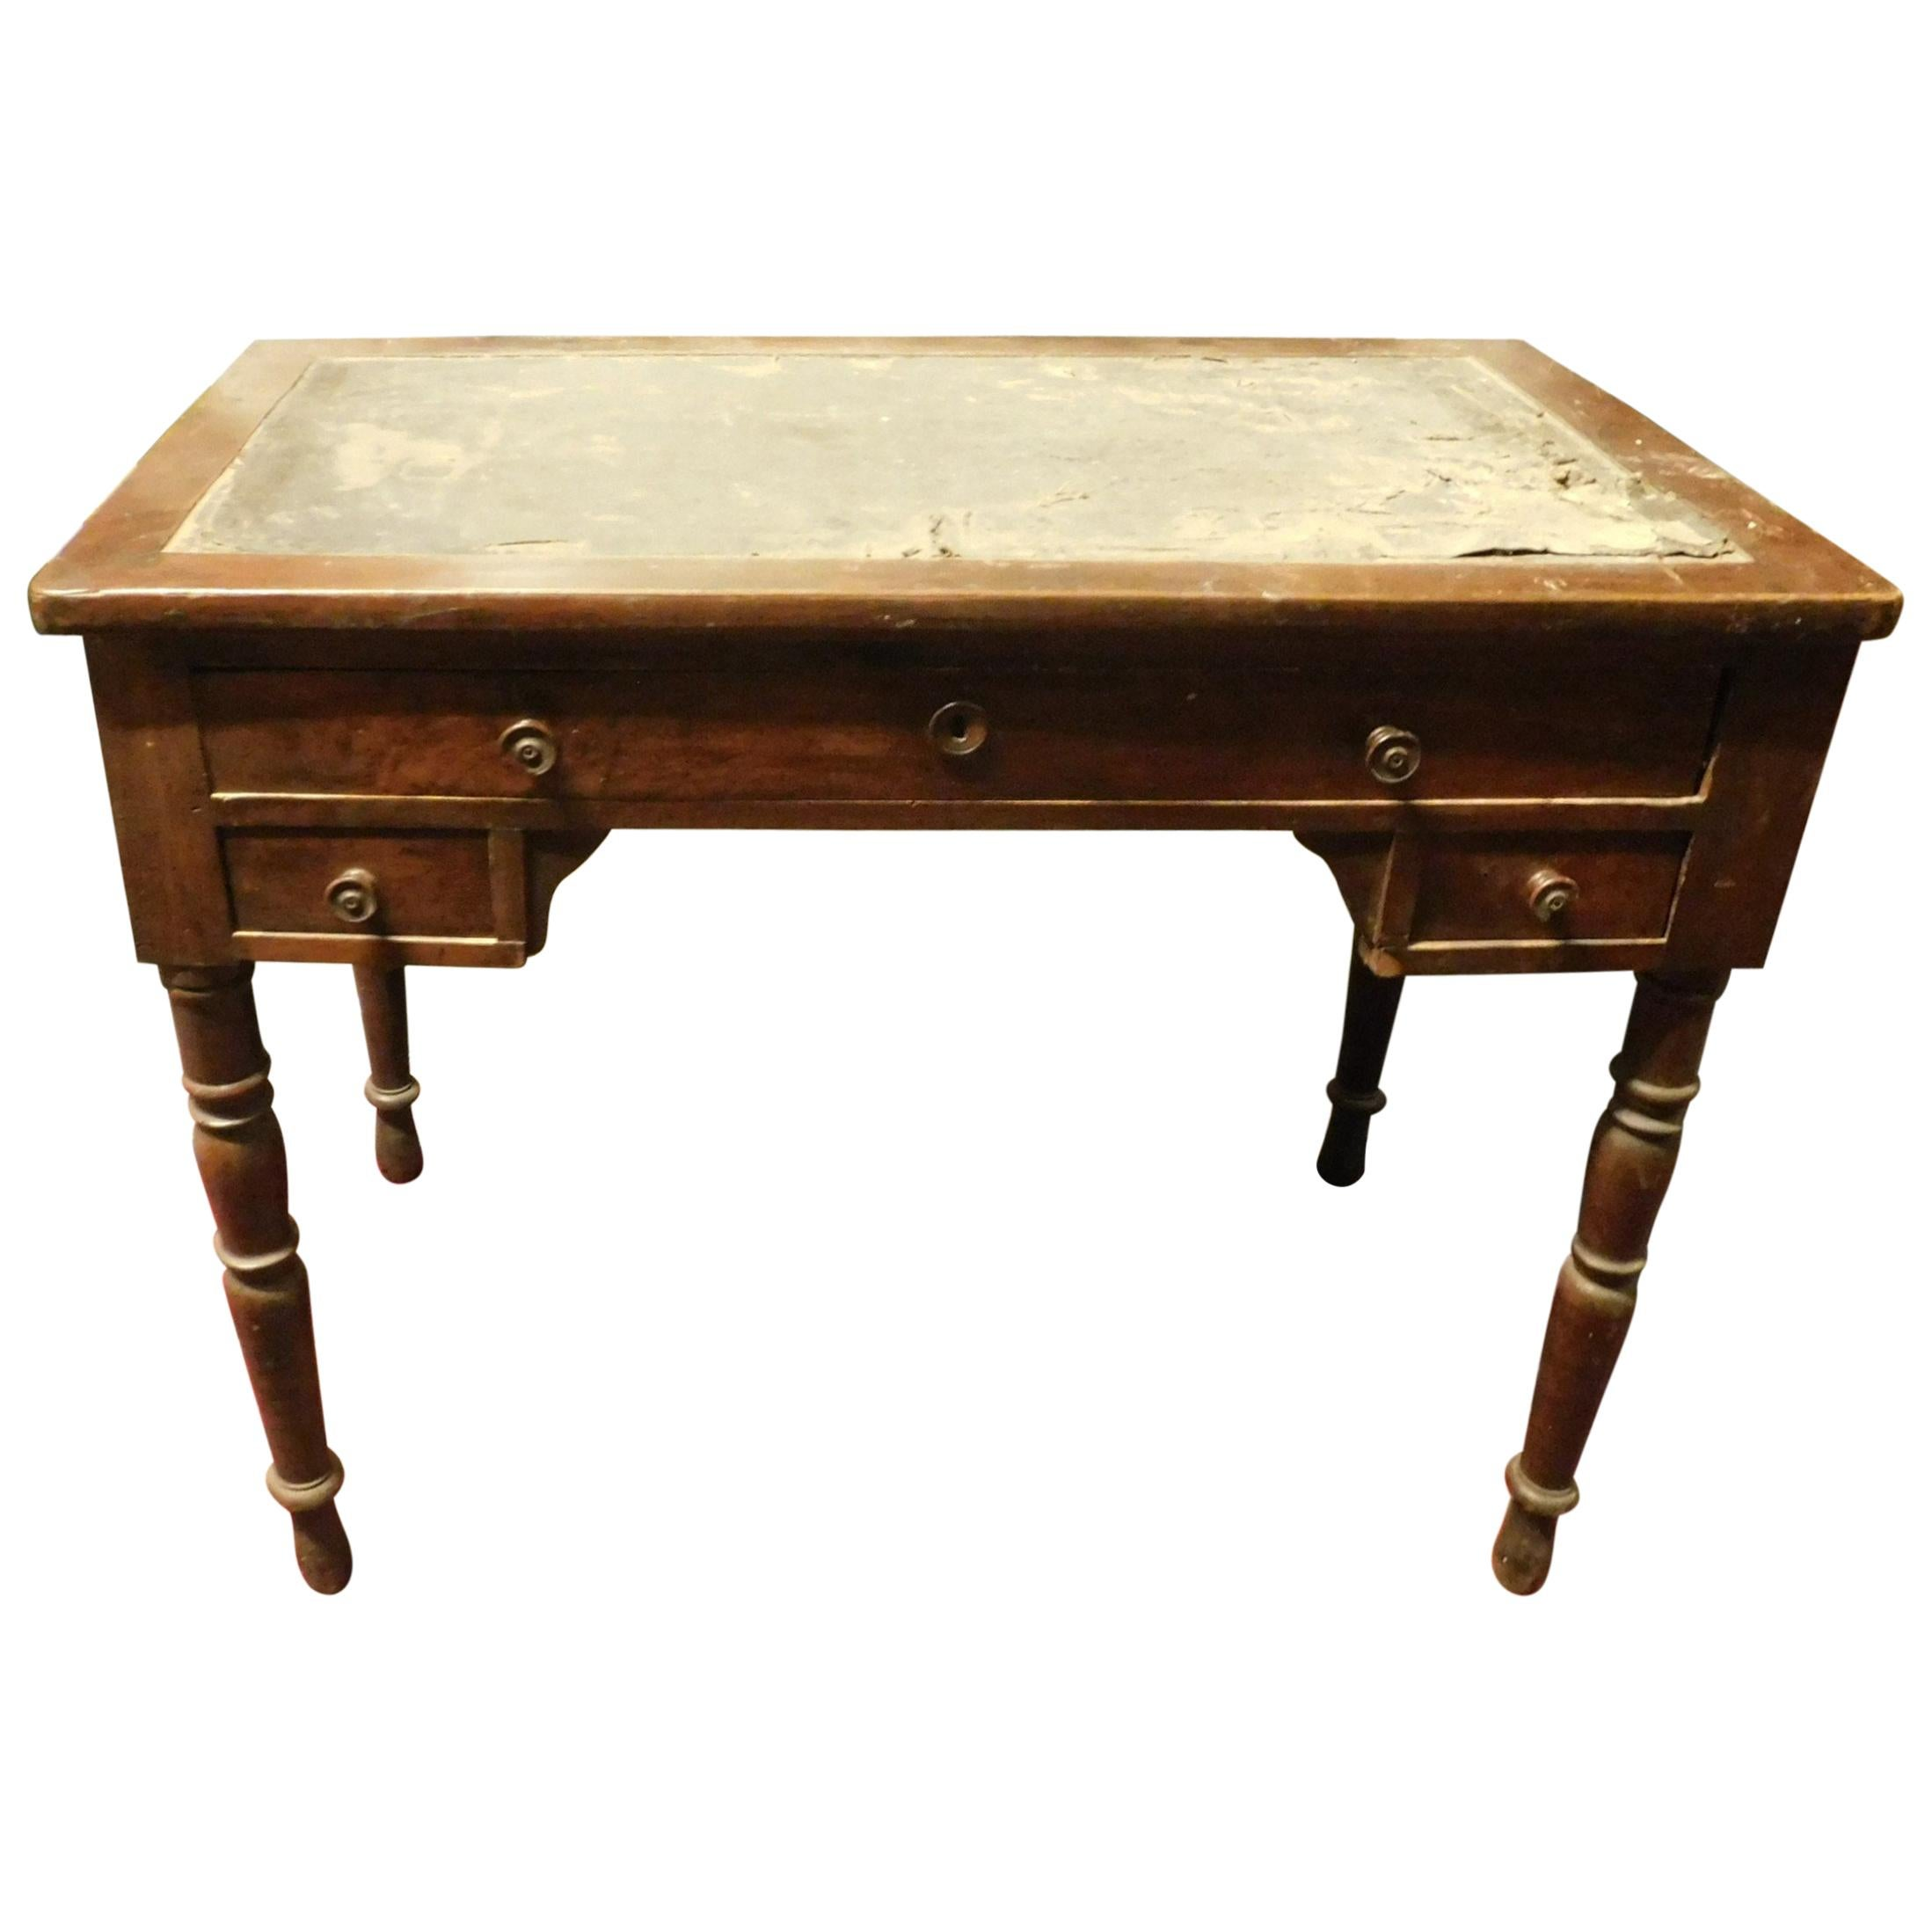 Vintage Small Desk in Walnut, Green Leather, 19th Century, Italy